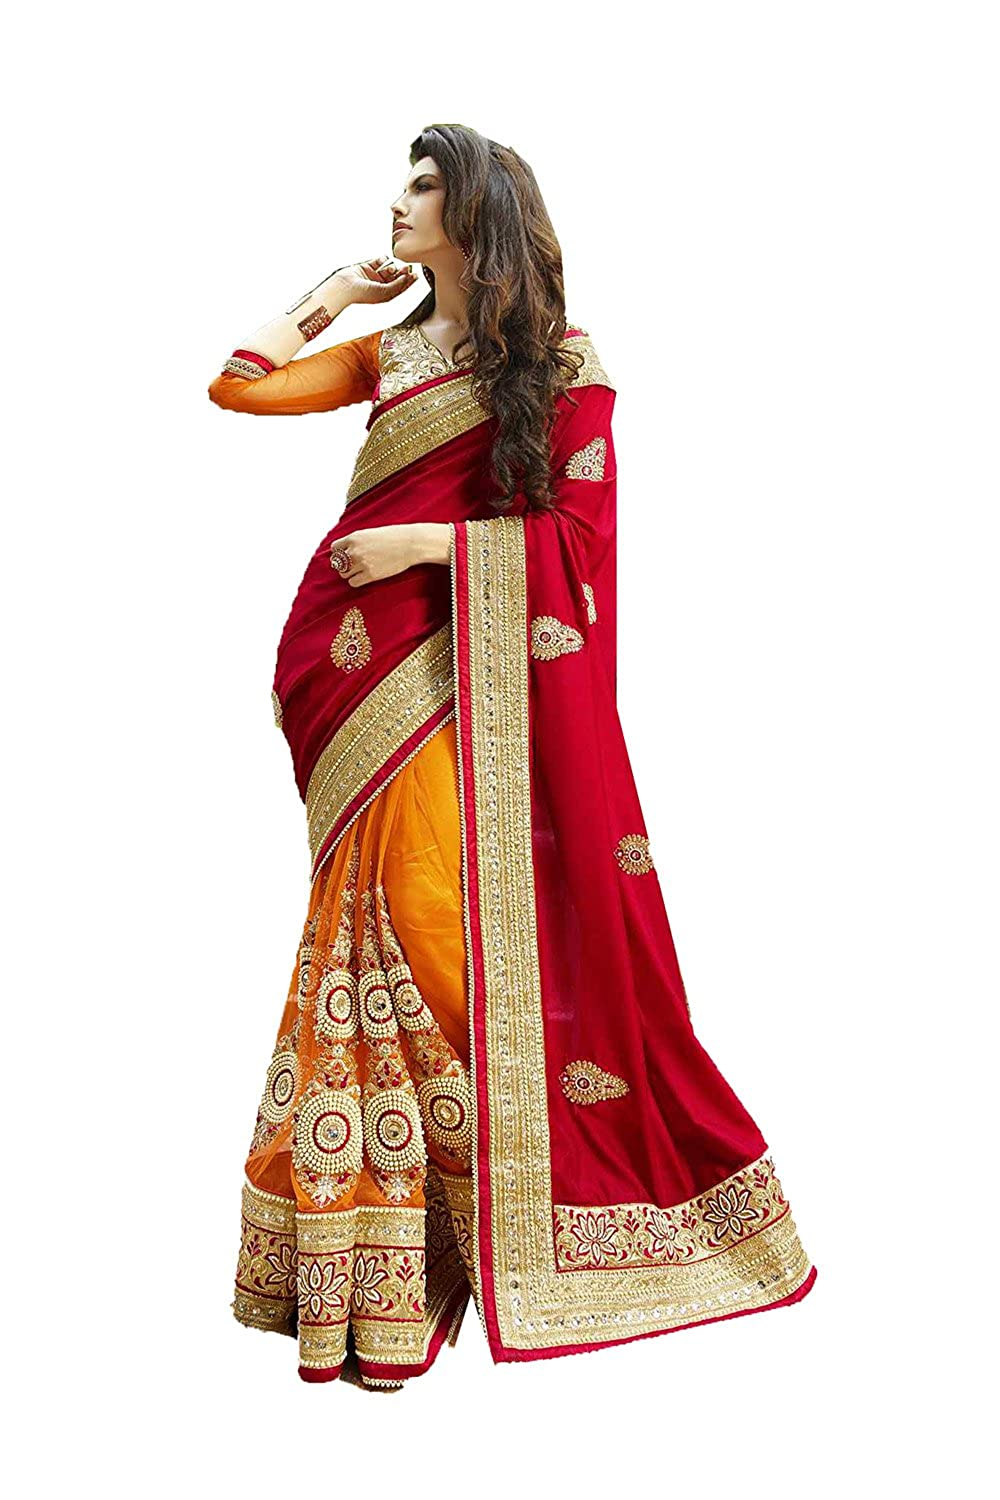 Da Facioun Indian Women Designer Party wear Deep red Saree Sari R-13628